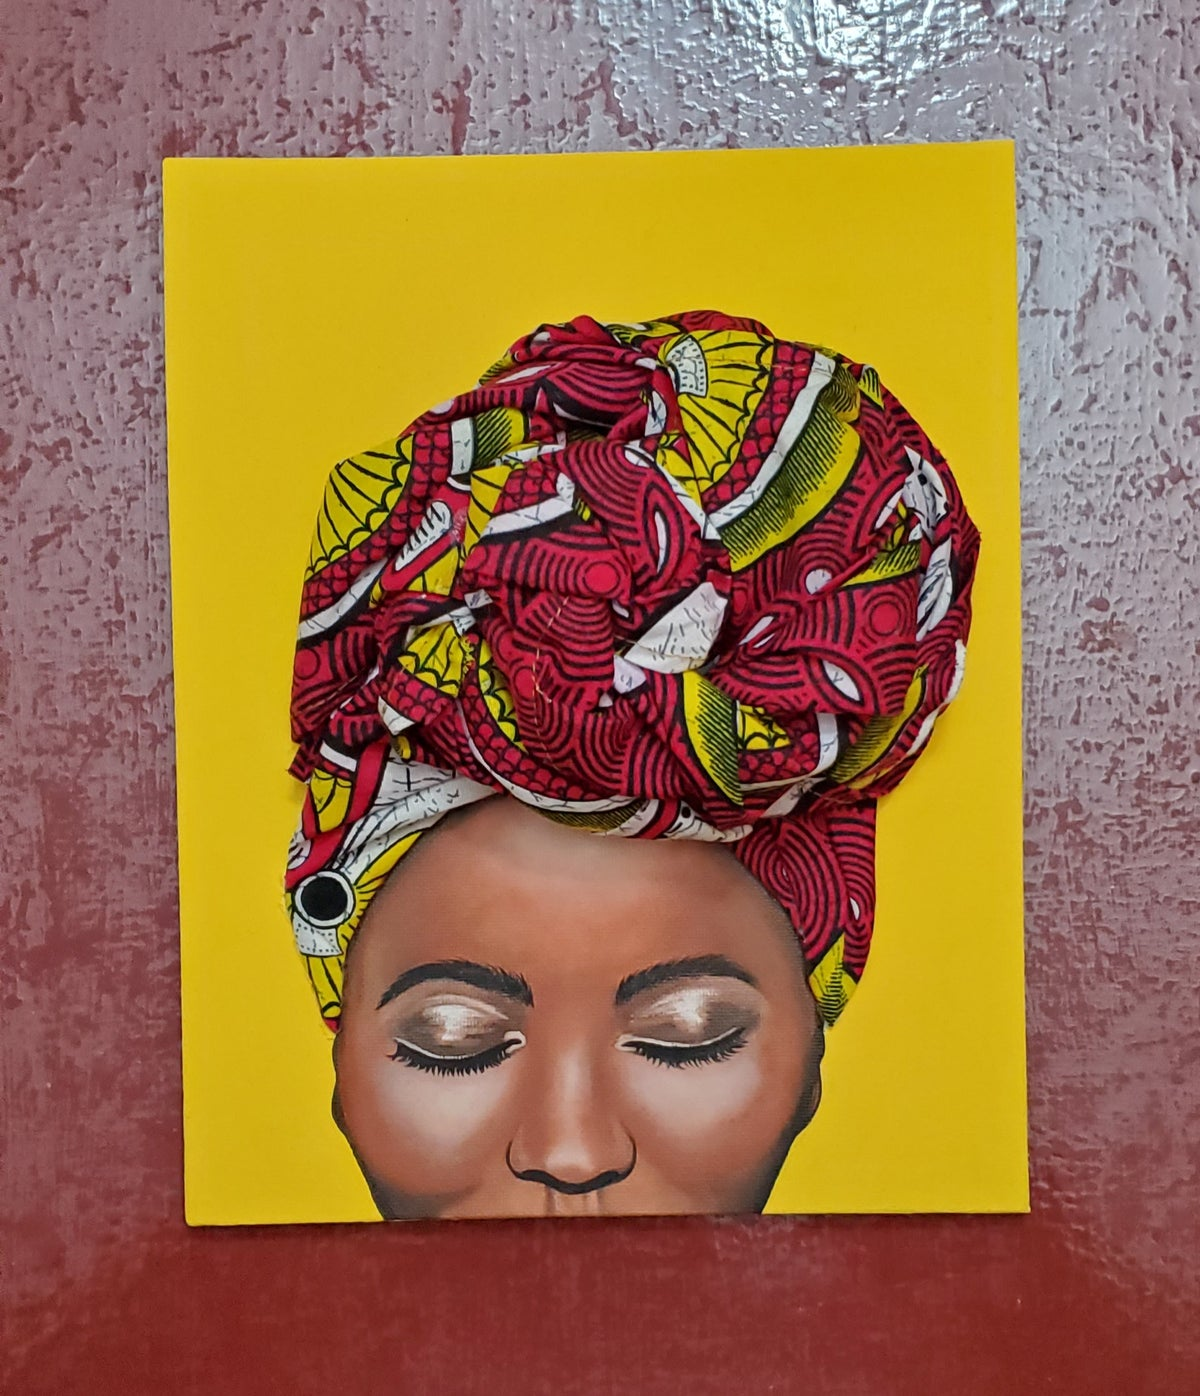 Image of Serenity Headwrap Painting #1B